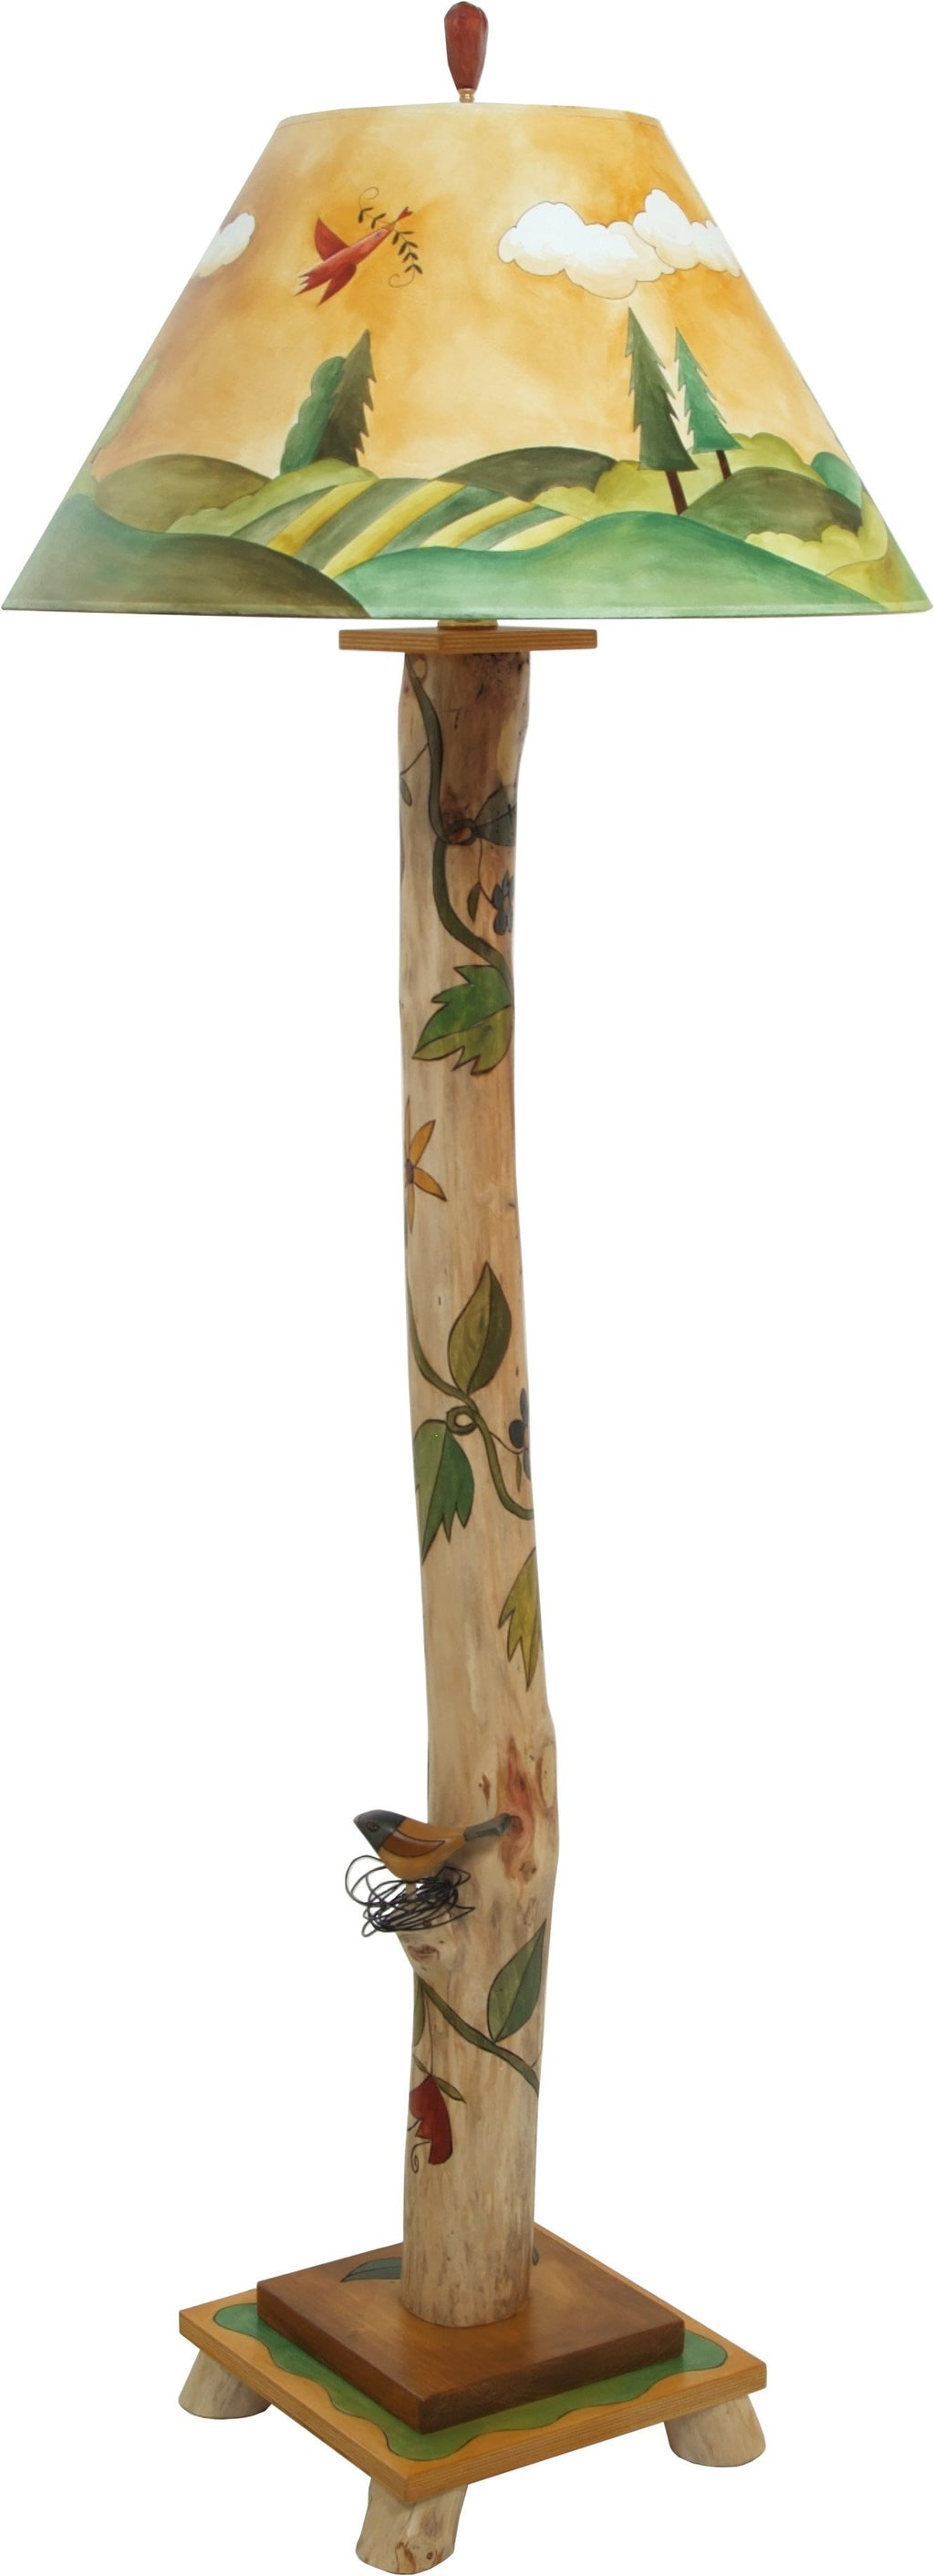 Log Floor Lamp –  Hand painted landscape lamp with vine motifs